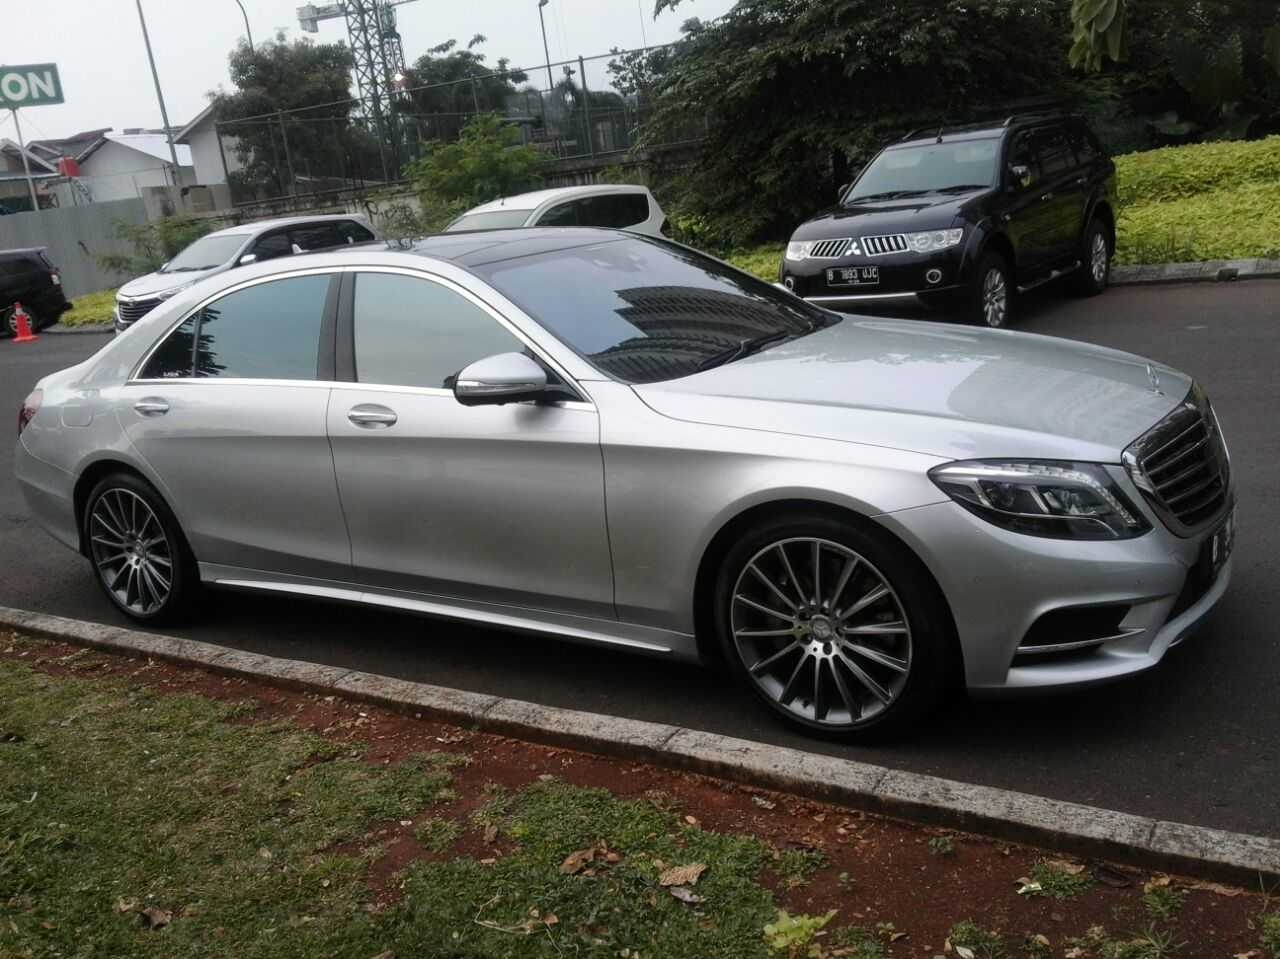 RENTAL -MOBIL- MERCEDES BENZ-S-500 WEDDING-PENGANTIN